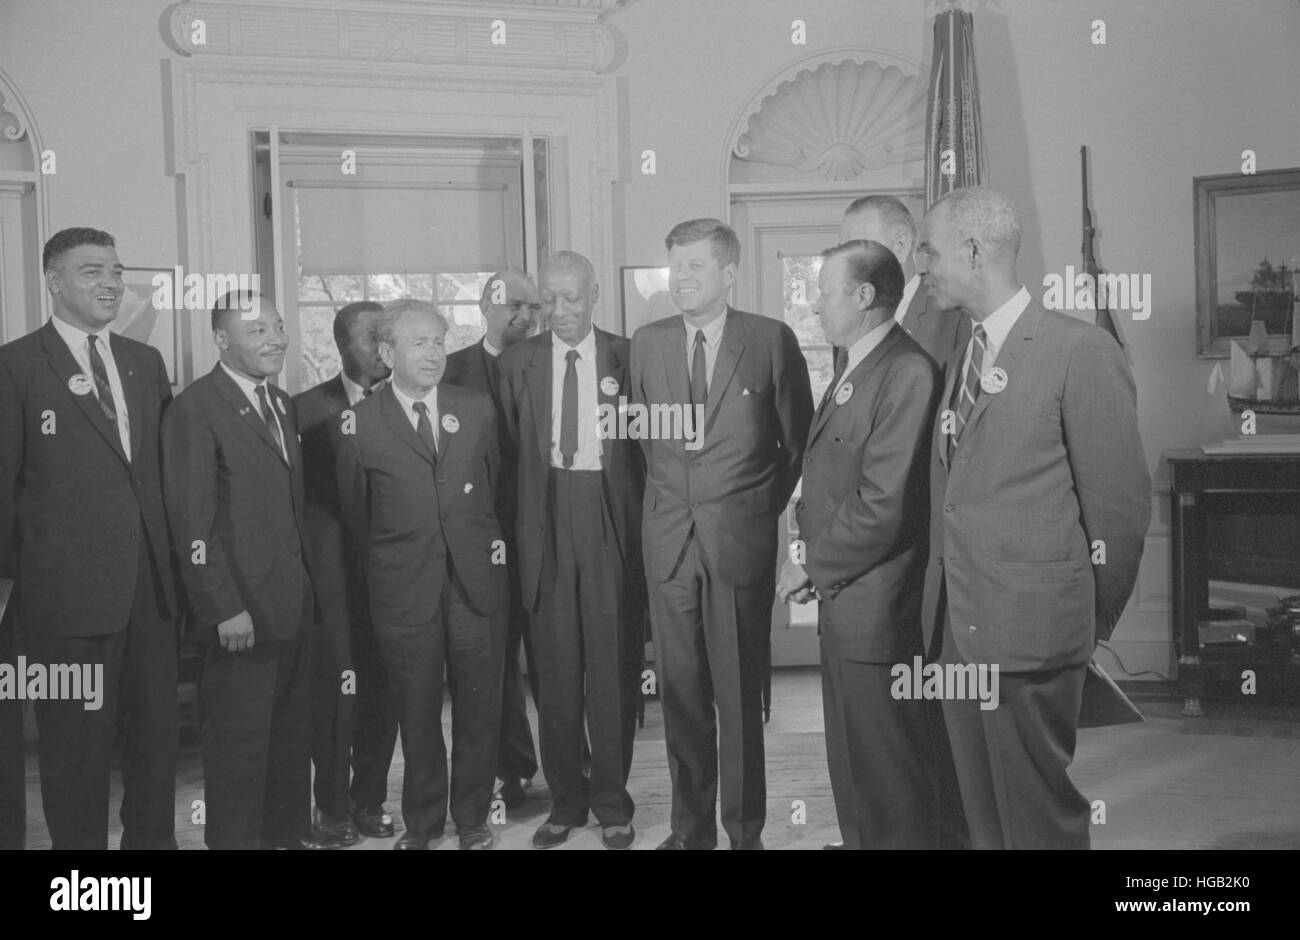 Civil rights leaders meet with President John F. Kennedy in the oval office of the White House. - Stock Image